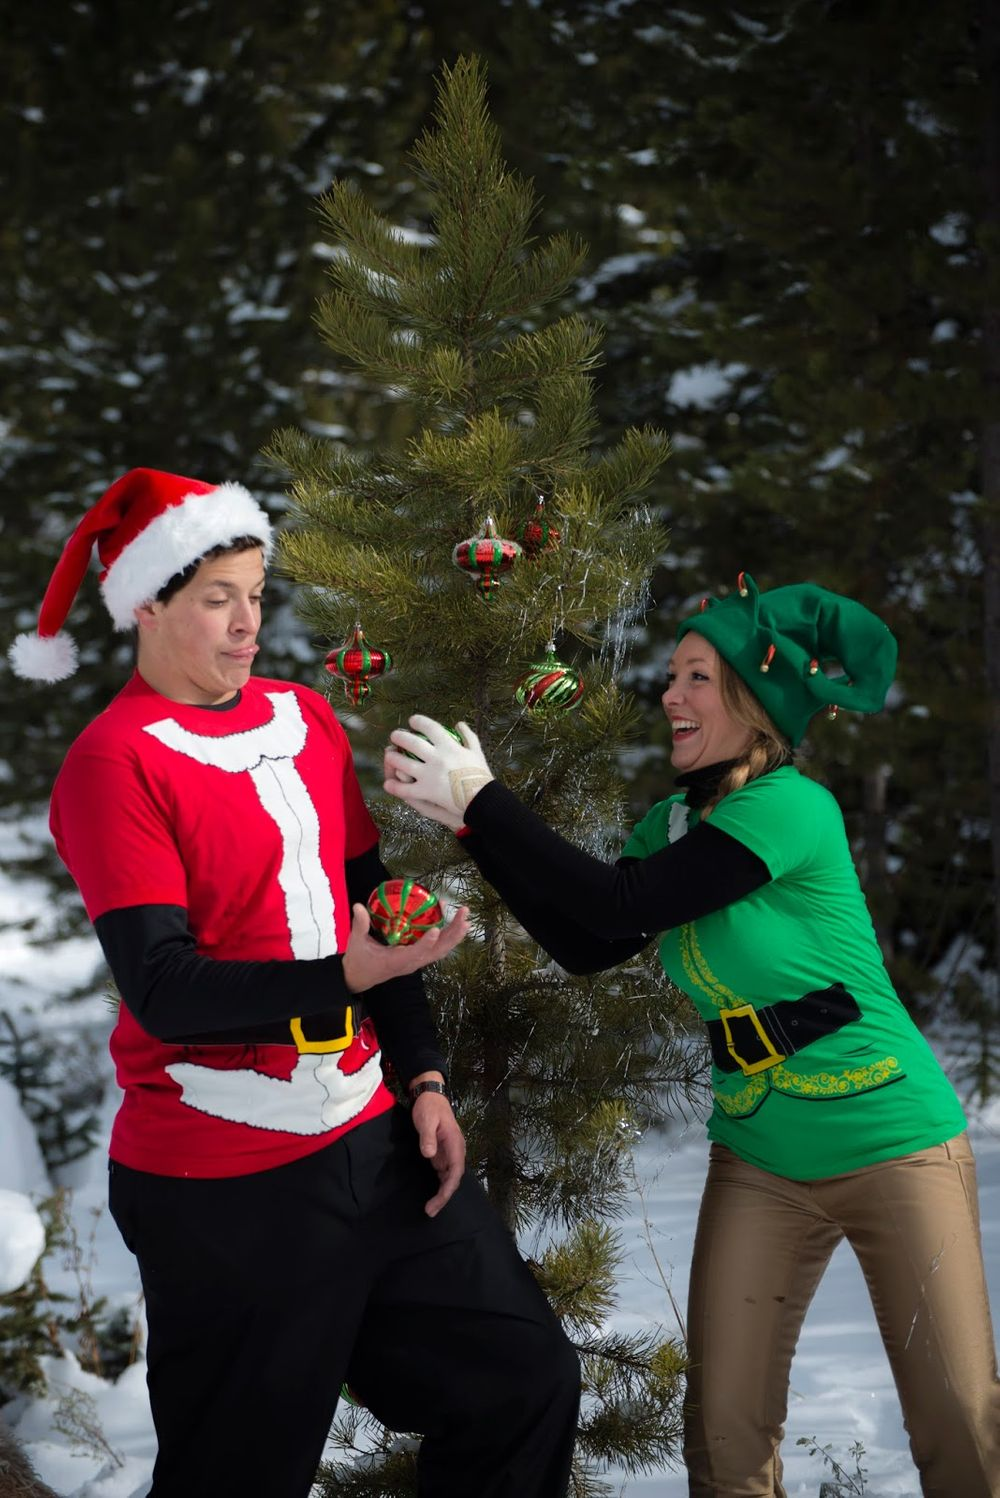 A couple in Christmas costumes tossing Christmas ornaments